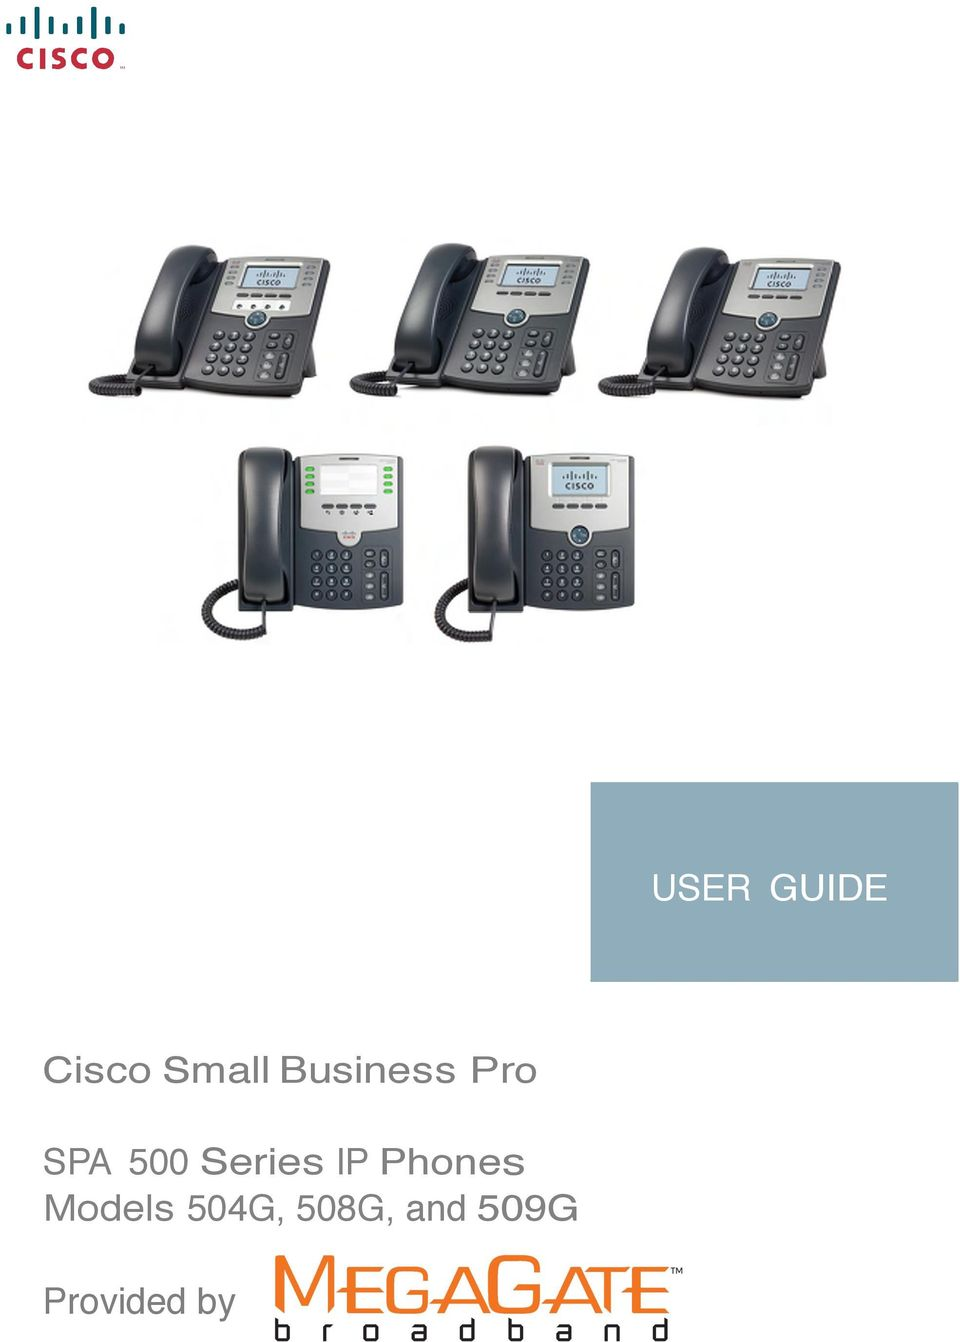 USER GUIDE  Cisco Small Business Pro  SPA 500 Series IP